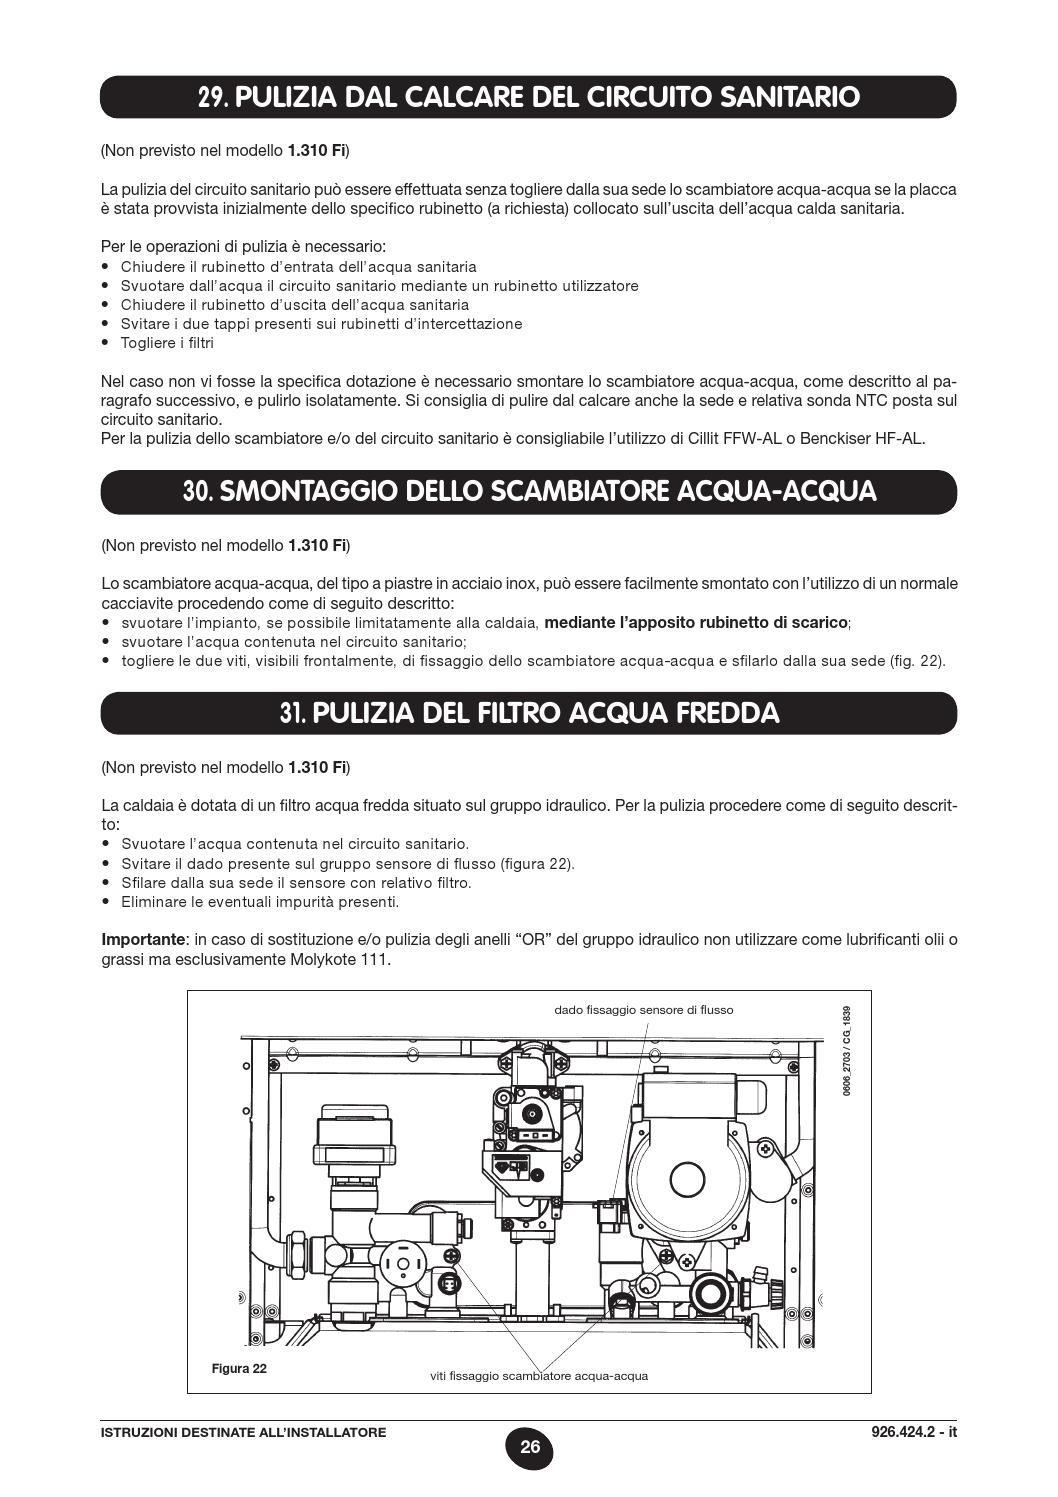 Manuale inglesina otutto 2012 election